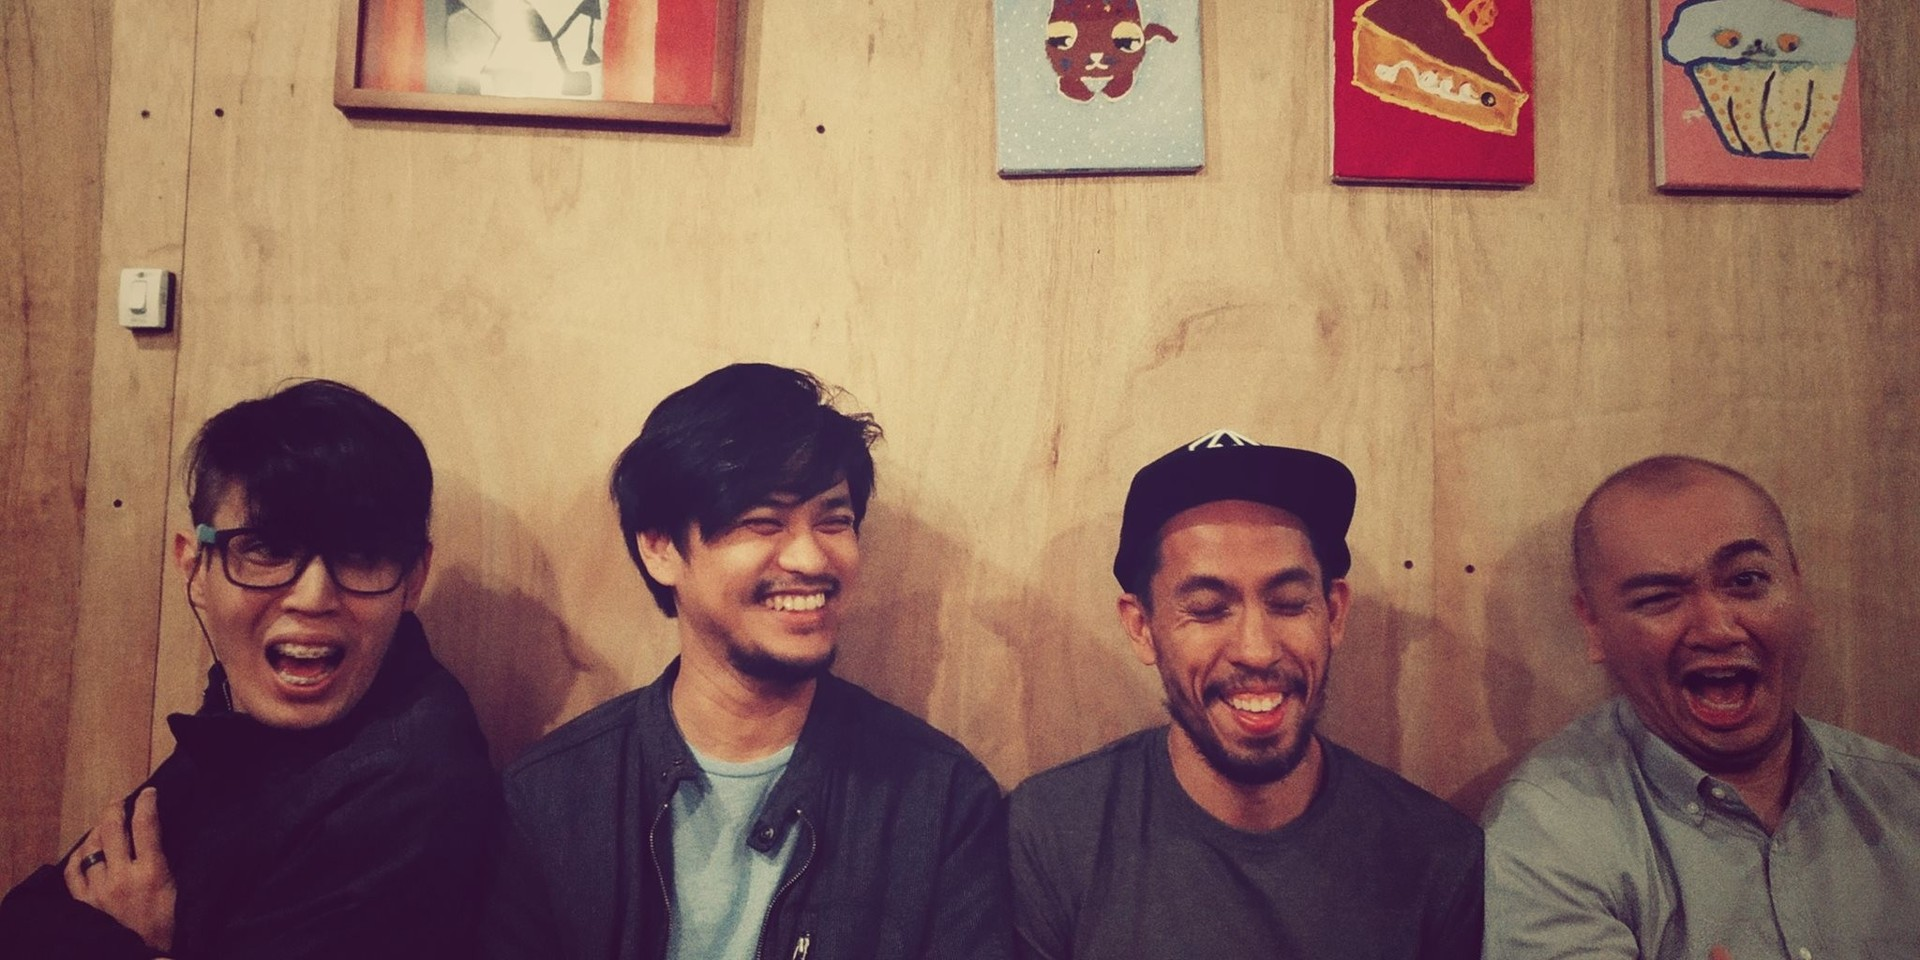 Ciudad to celebrate release of 'Tiny Apartment' with Boldstar, Hannah+Gabi, and theboywhocriedfolk